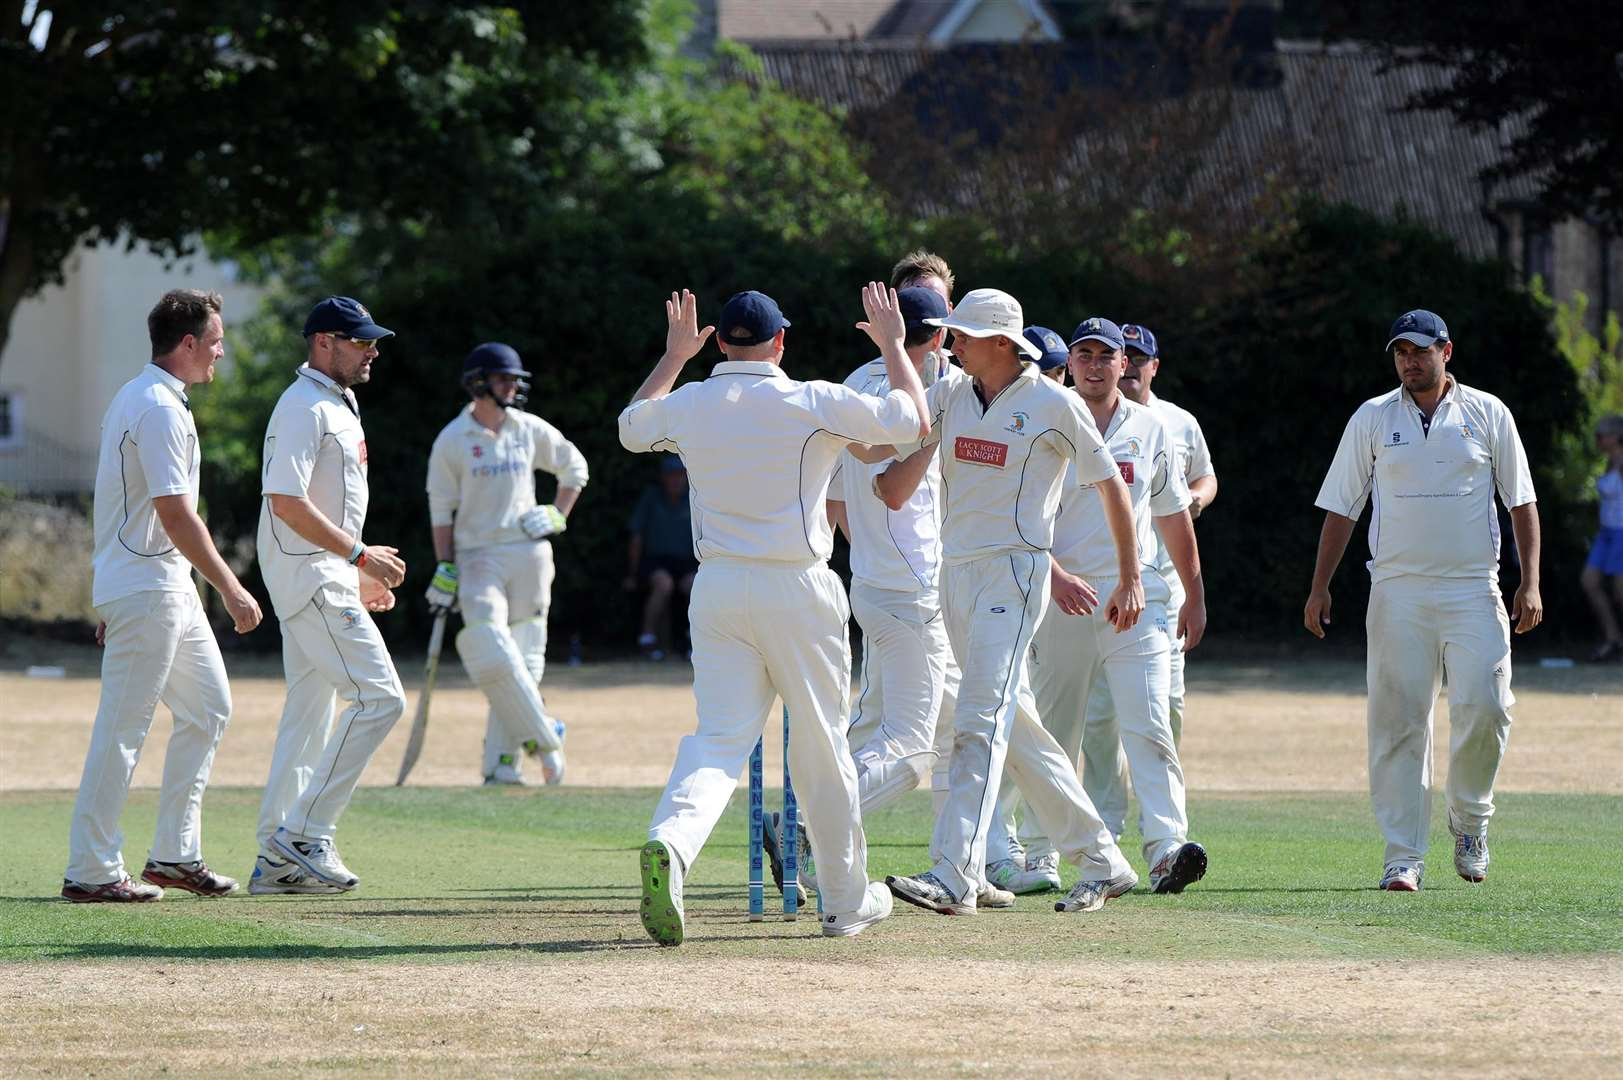 WINNERS: Worlington beat their opponents Foxton by 35 runs on the scorching day (Picture: Mecha Morton)